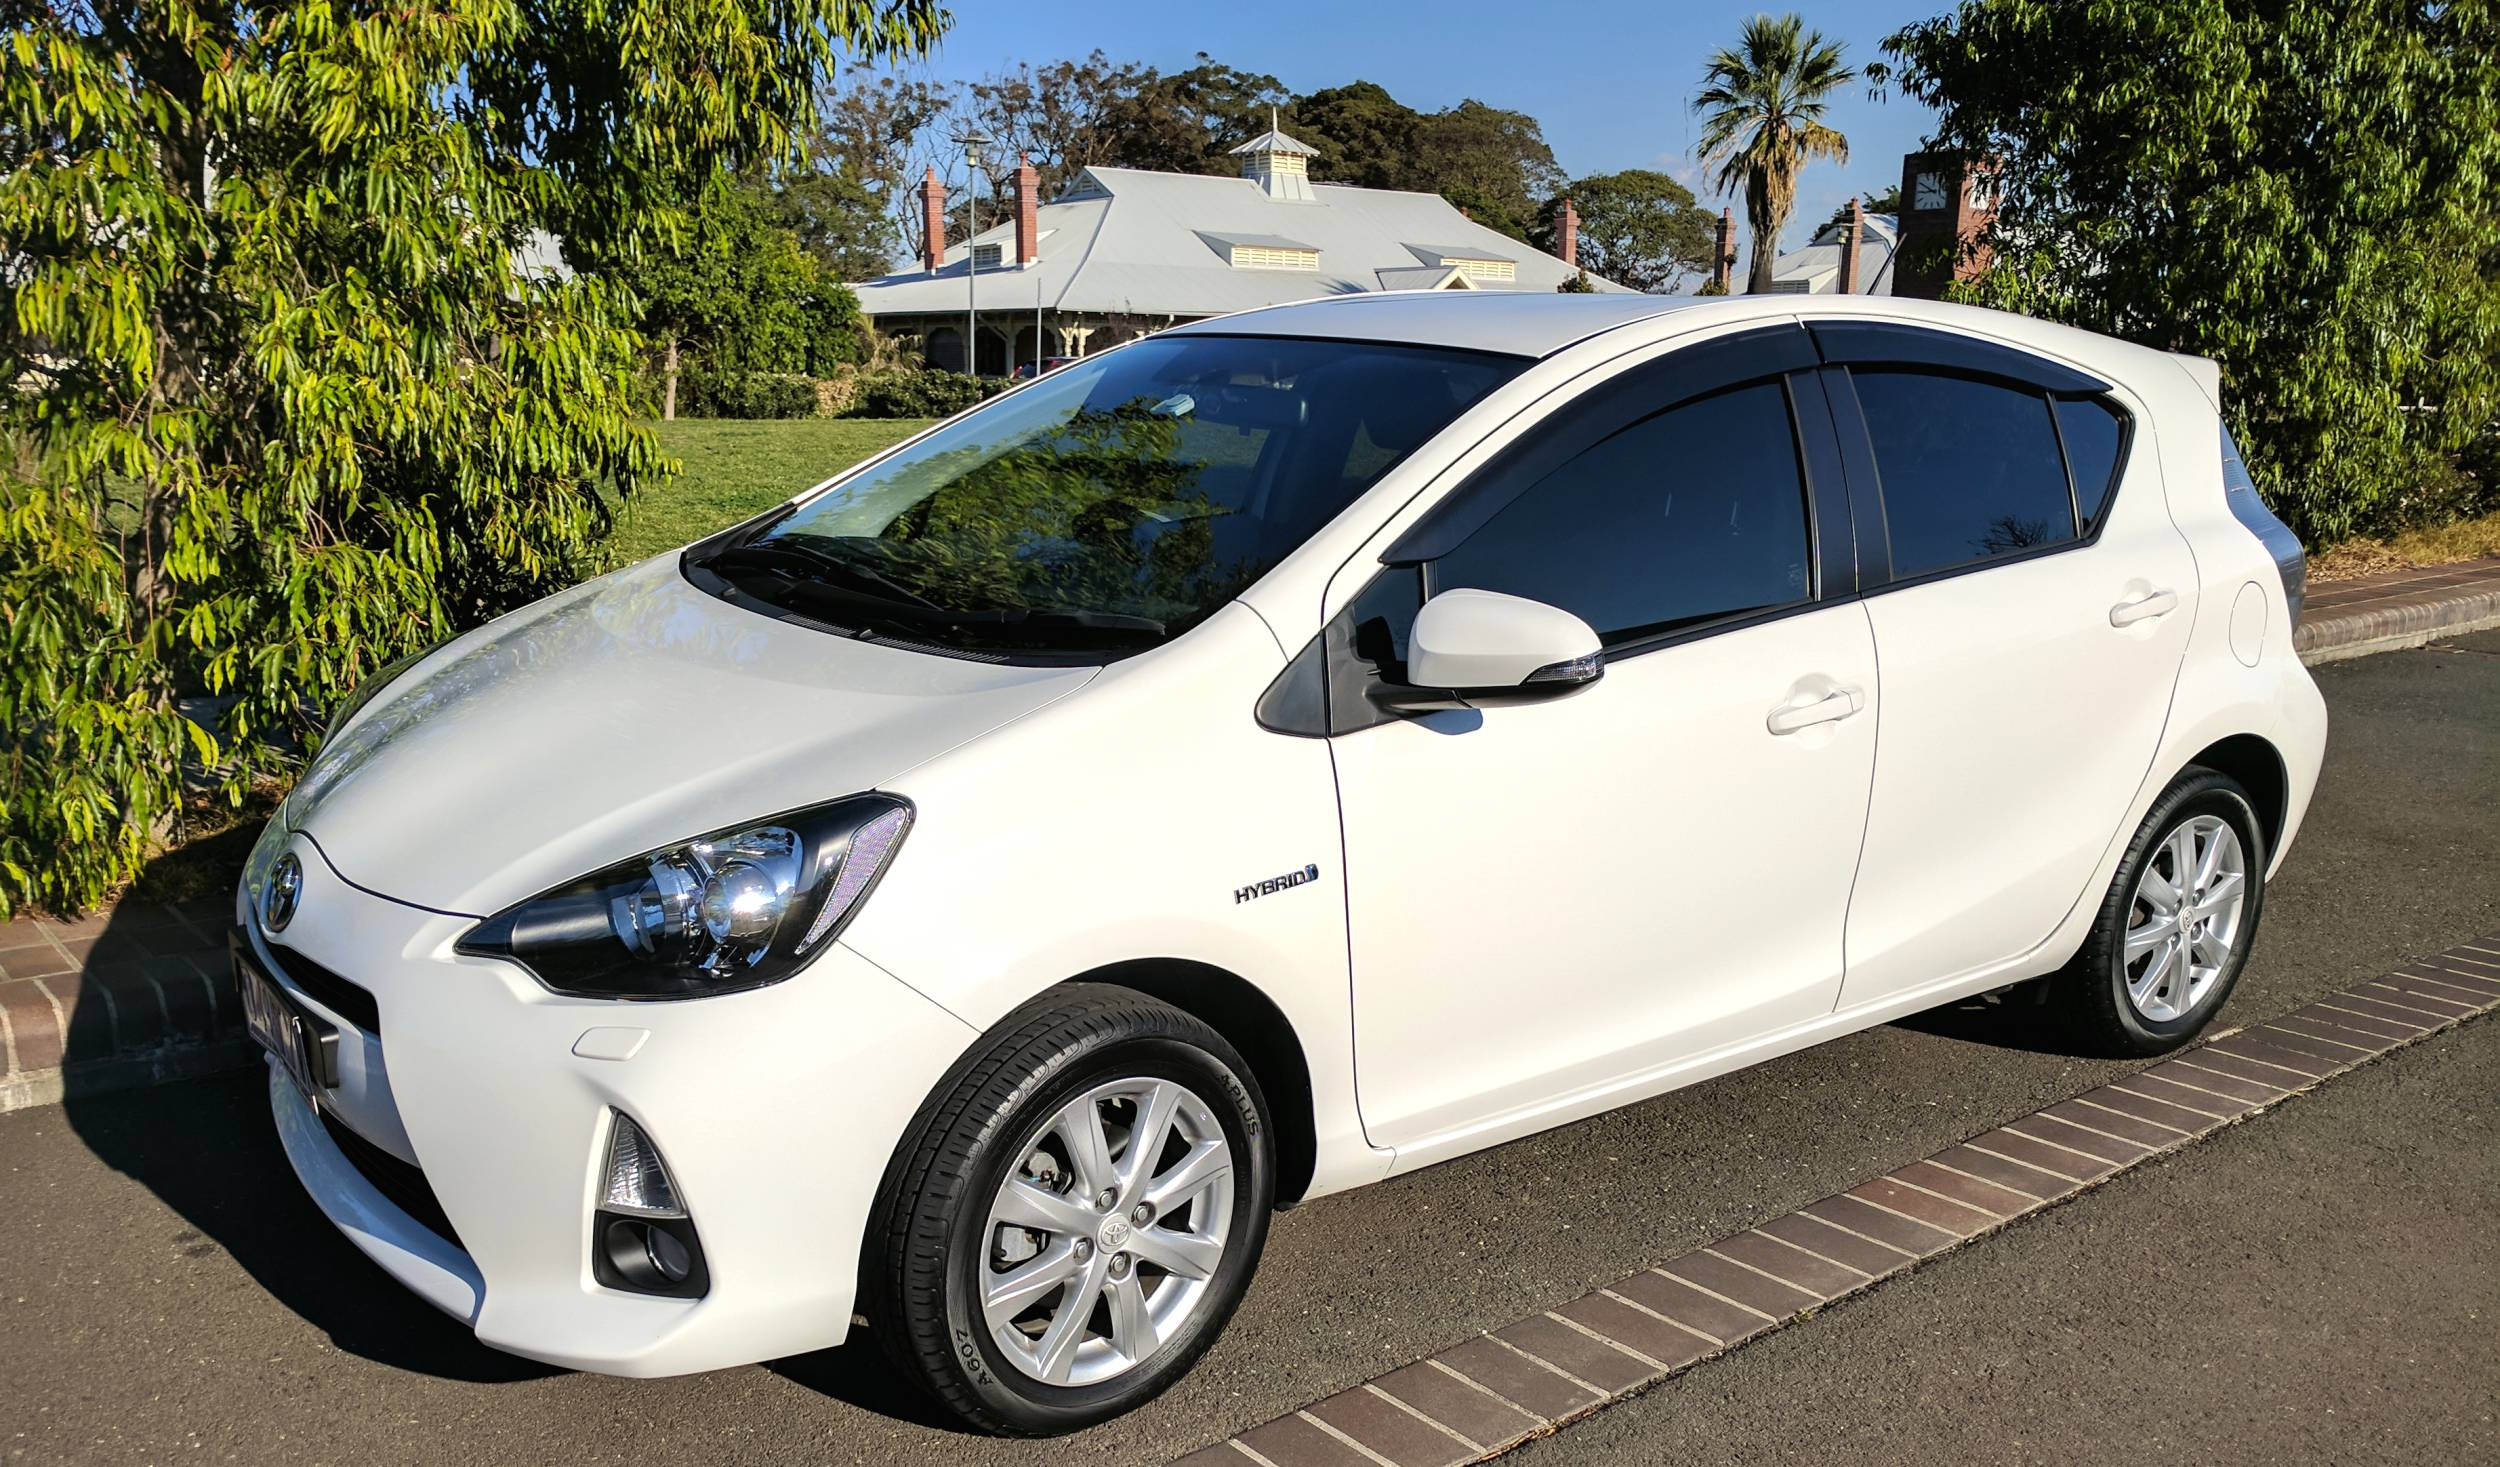 Picture of Silma's 2014 Toyota Prius C